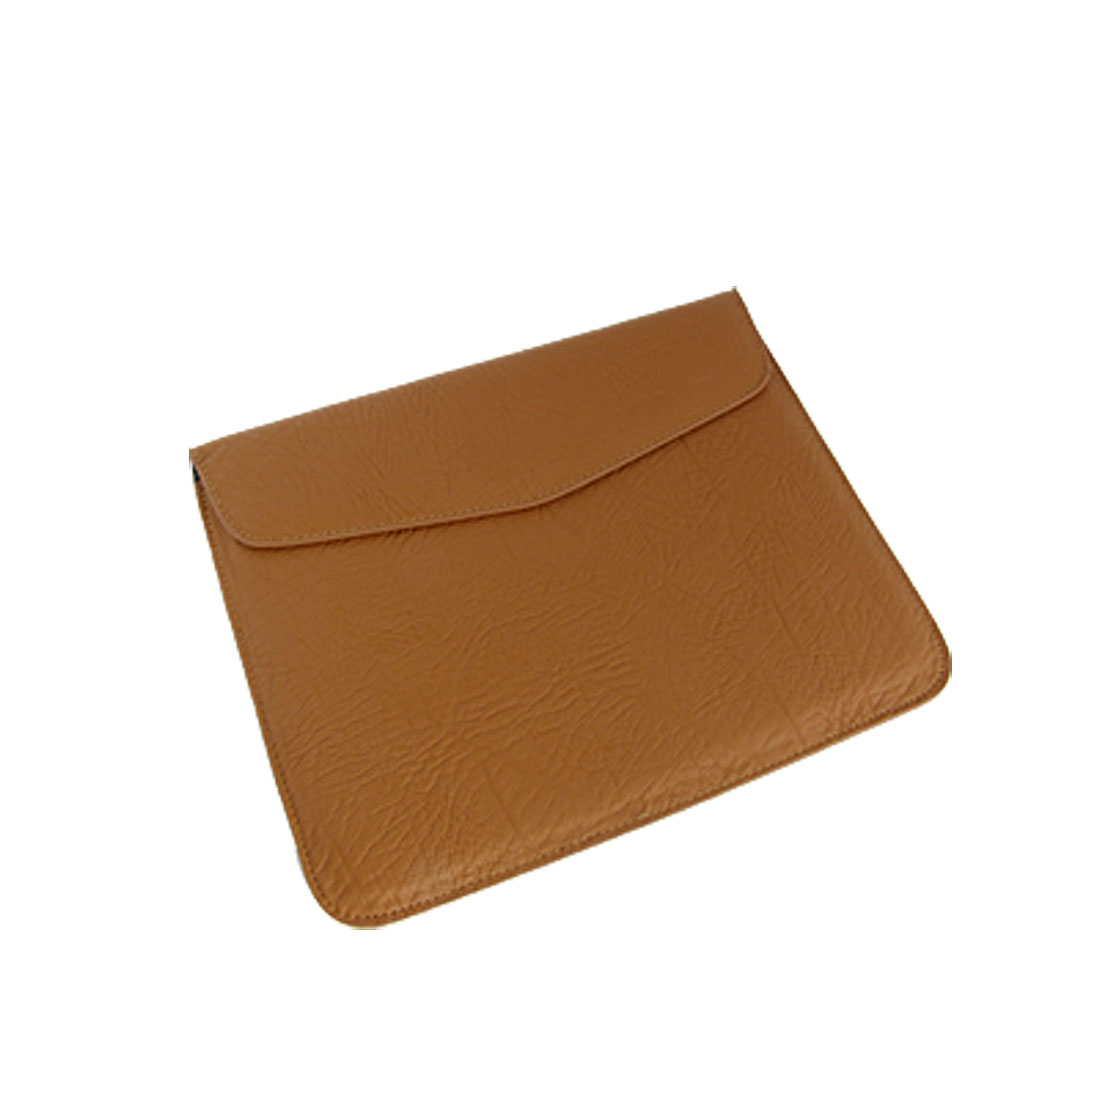 Yellowish-brown External Nonslip Briefcase Style Bag for Notebook